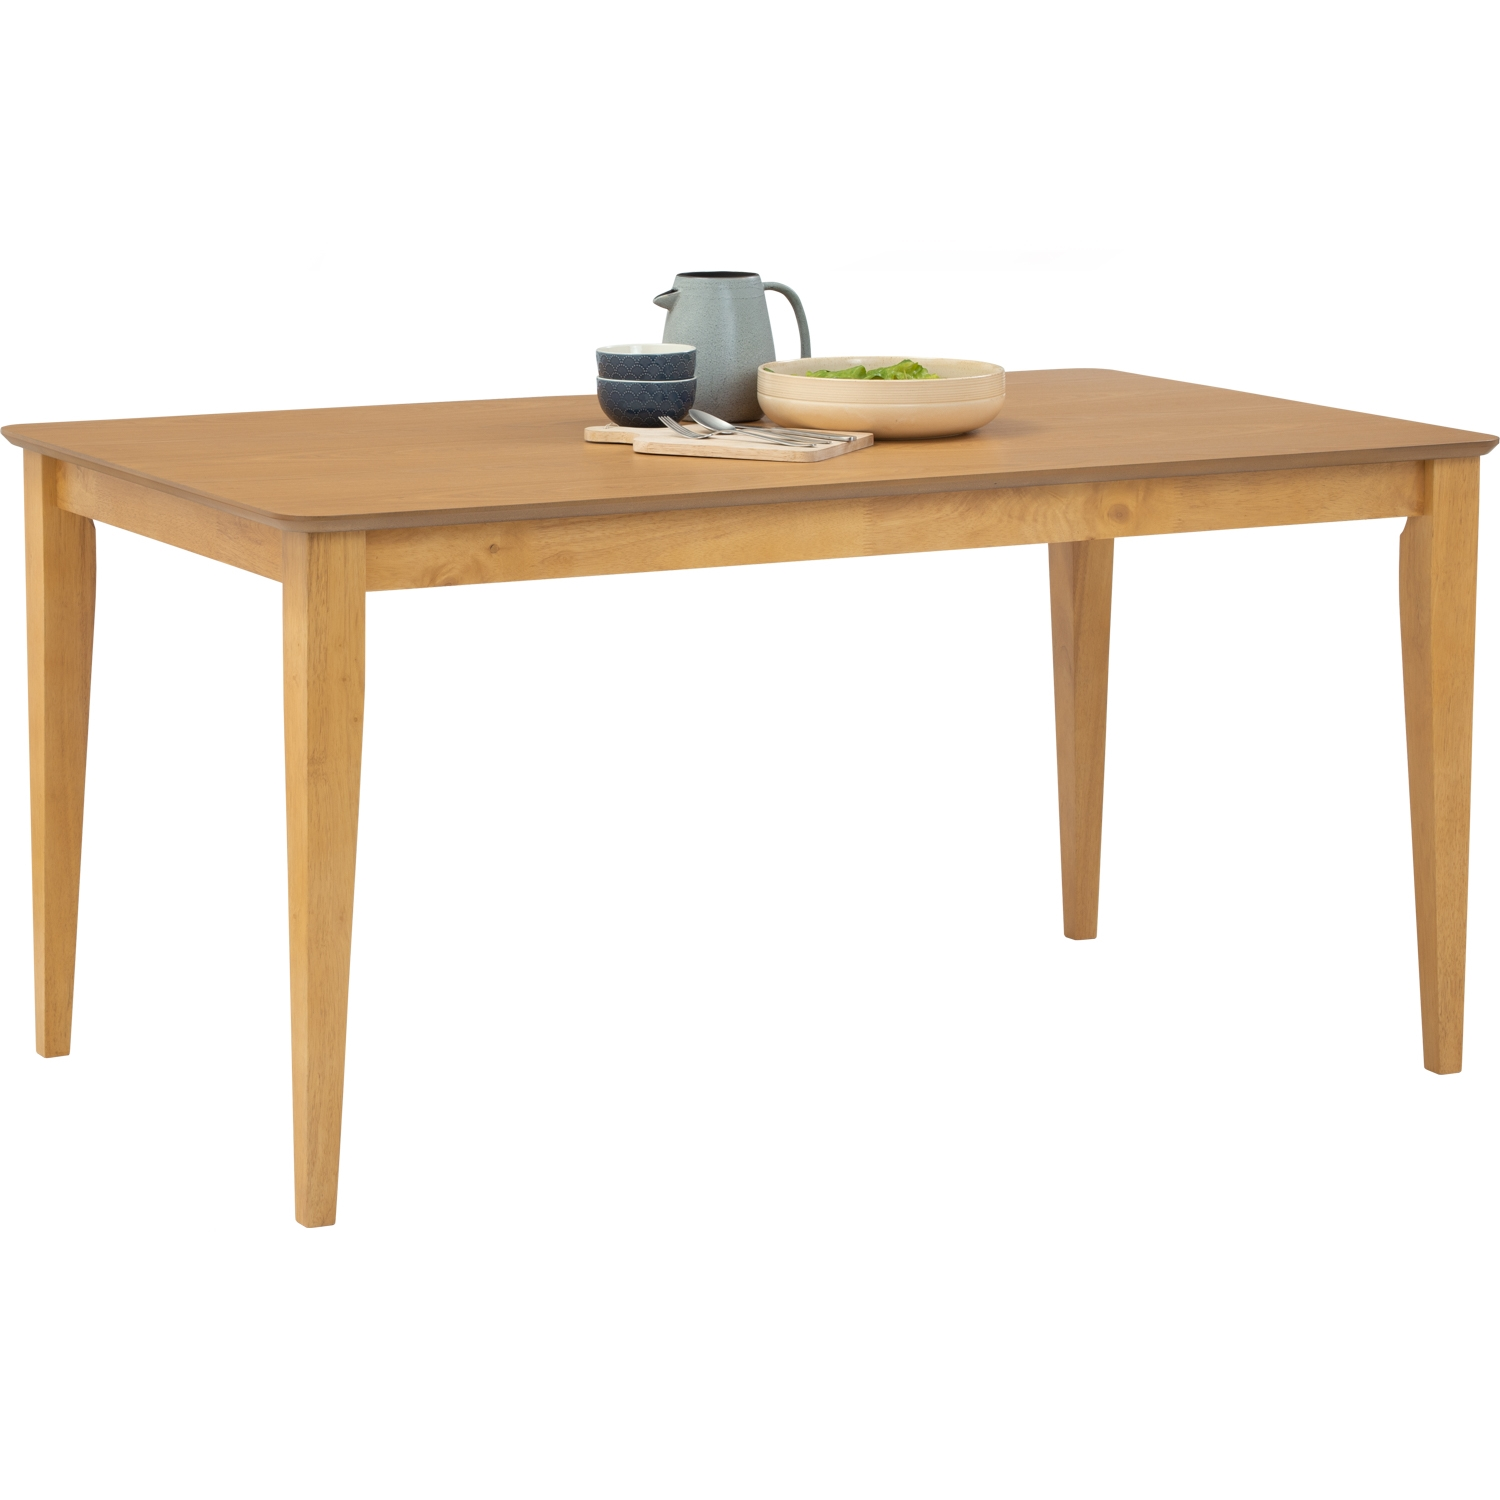 Allegro 1 5m Solid Wood Dining Table, Allegro Dining Room Furniture